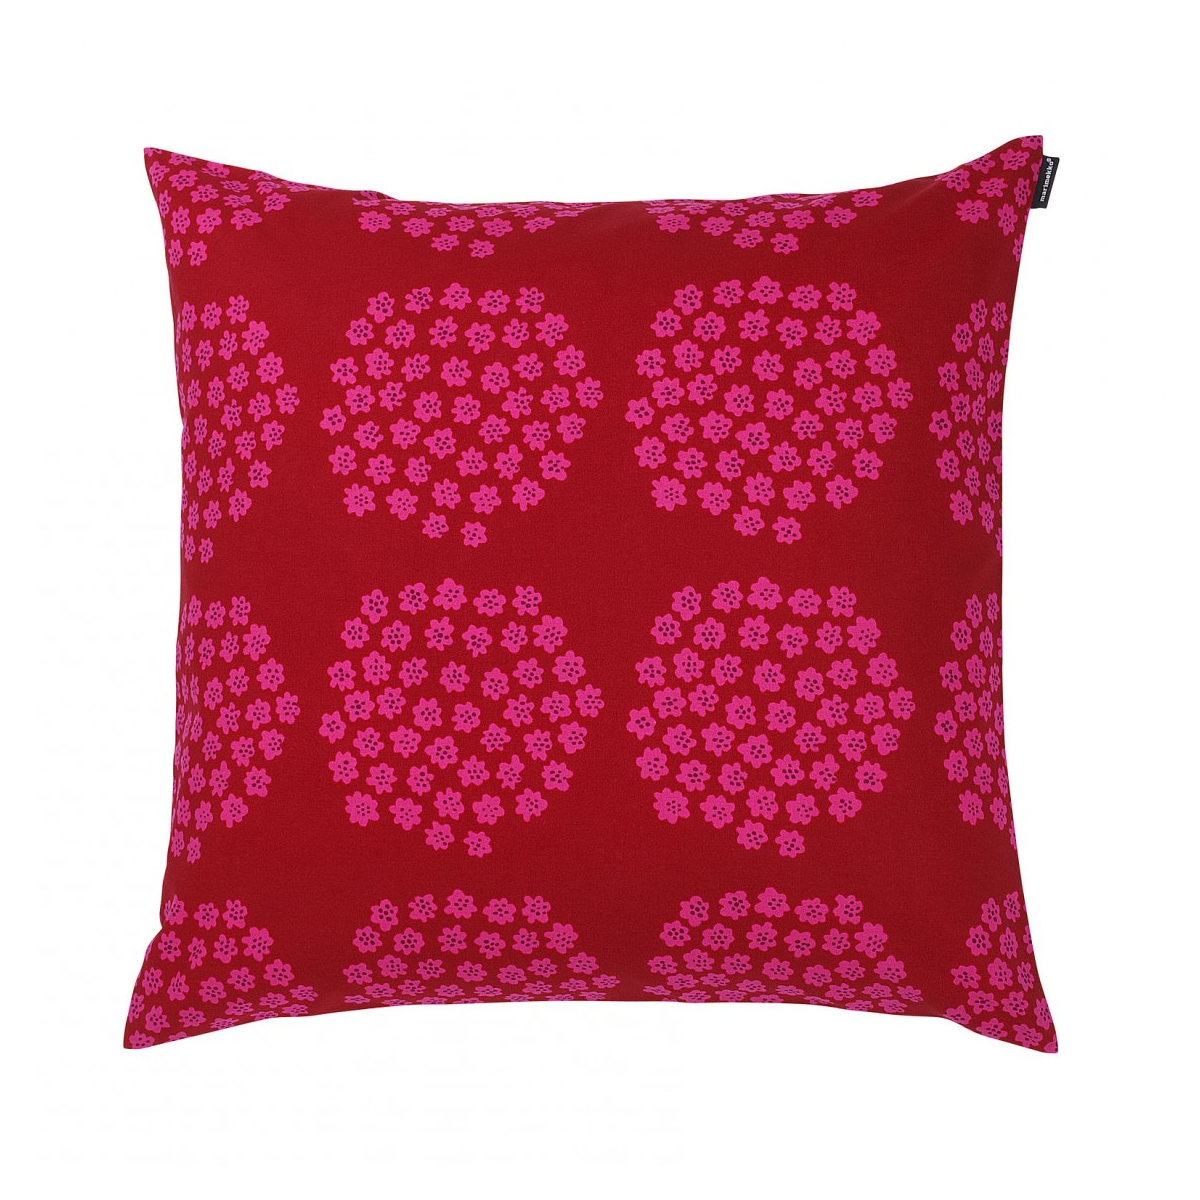 Pink Throw Pillows For Couch : Marimekko Puketti Red/Pink Throw Pillow - Marimekko Throw Pillows & Blankets